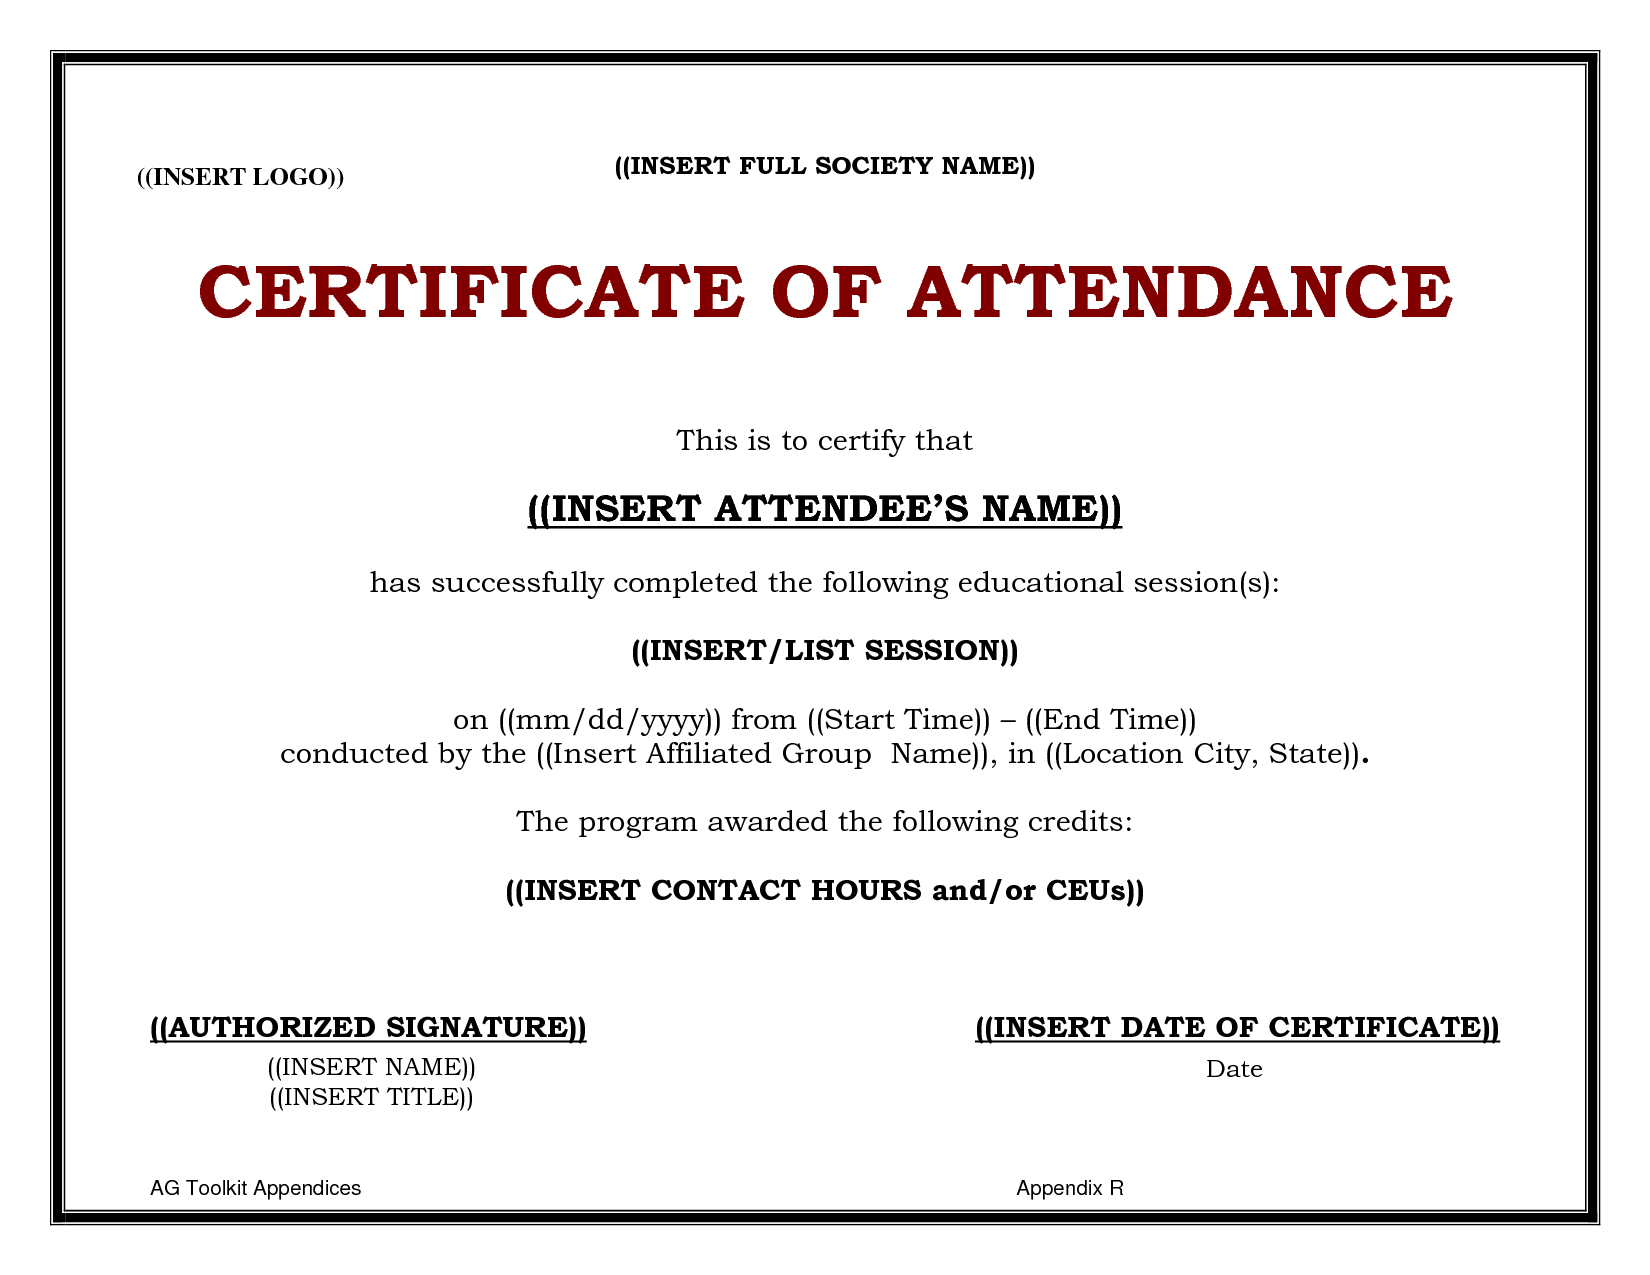 Ceu Certificate Template  Sansurabionetassociats With Regard To Certificate Of Attendance Conference Template